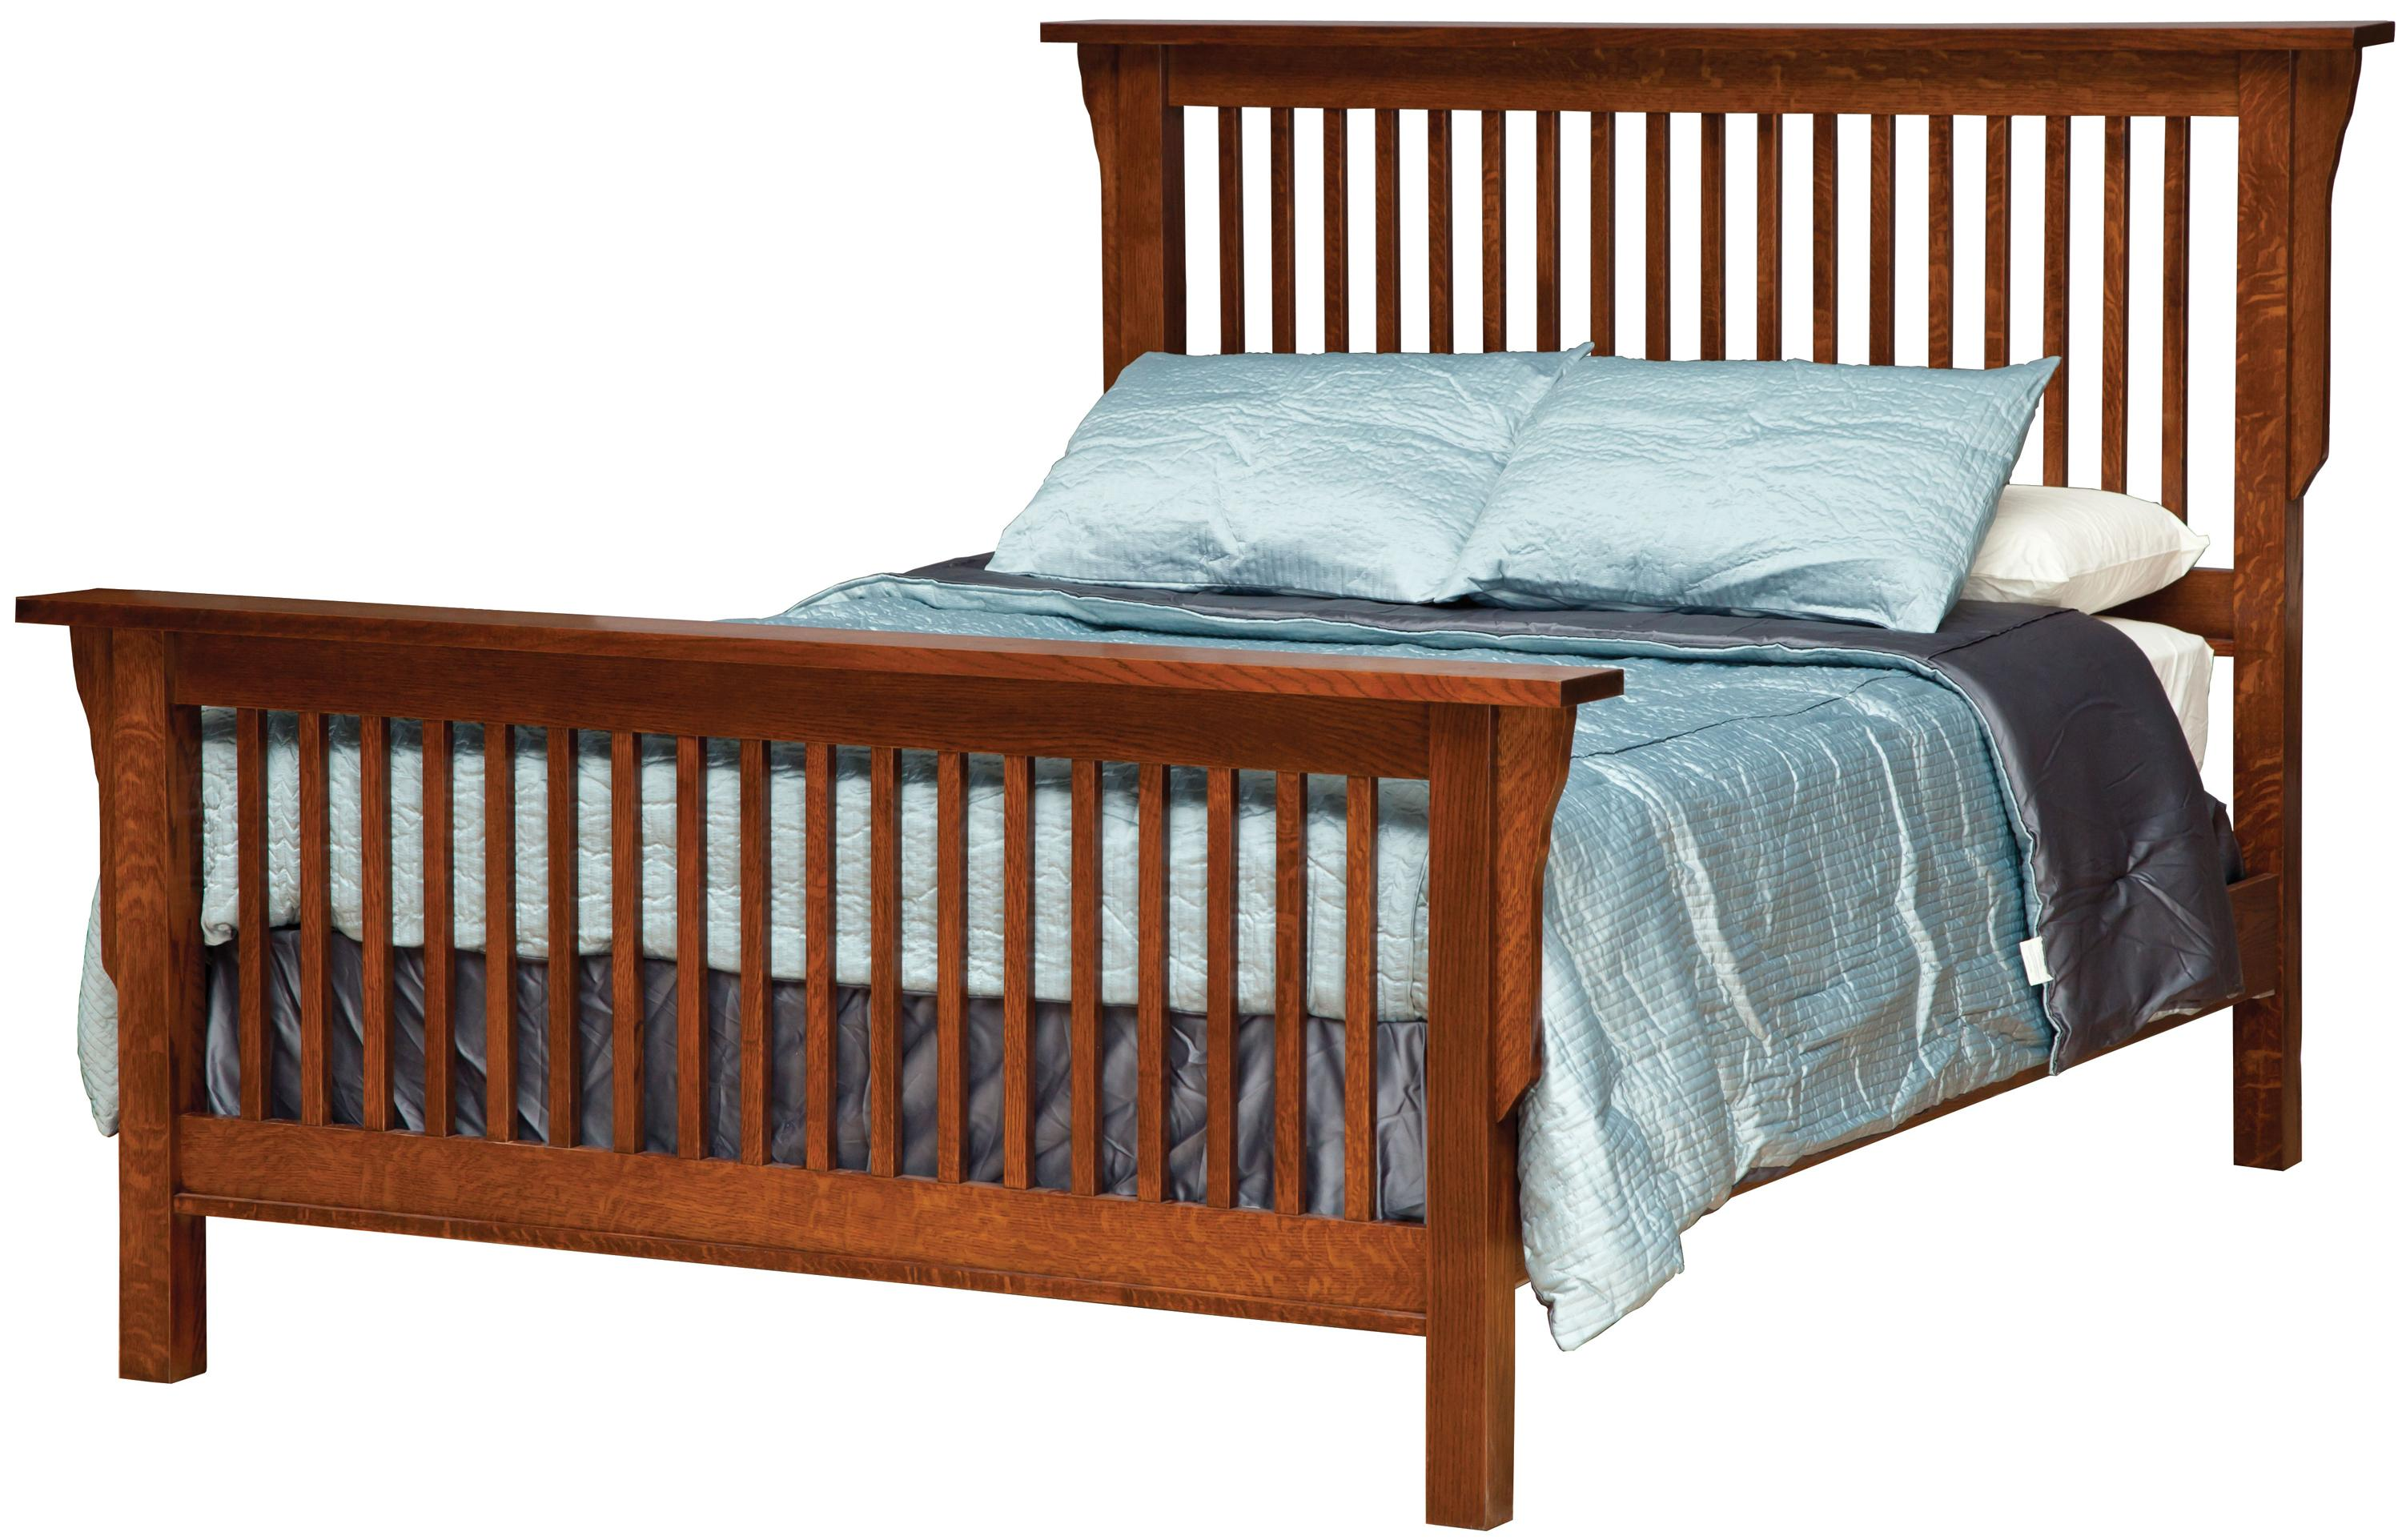 Twin mission style frame bed with headboard footboard for Mission style bed frame plans